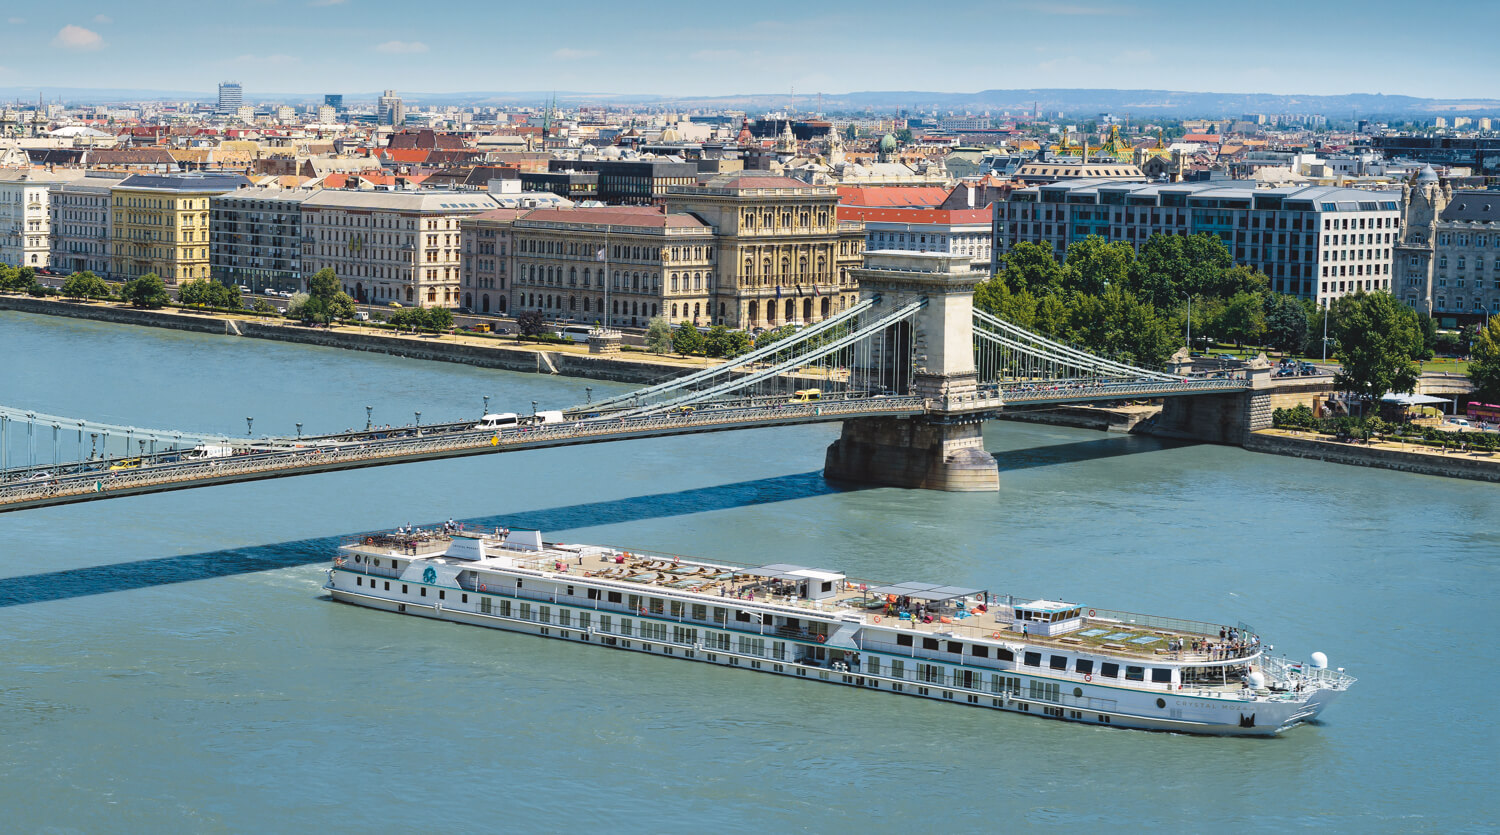 Crystal River Cruises Seaview Cruises Cruise Lines Cruise Ships Cruise Information